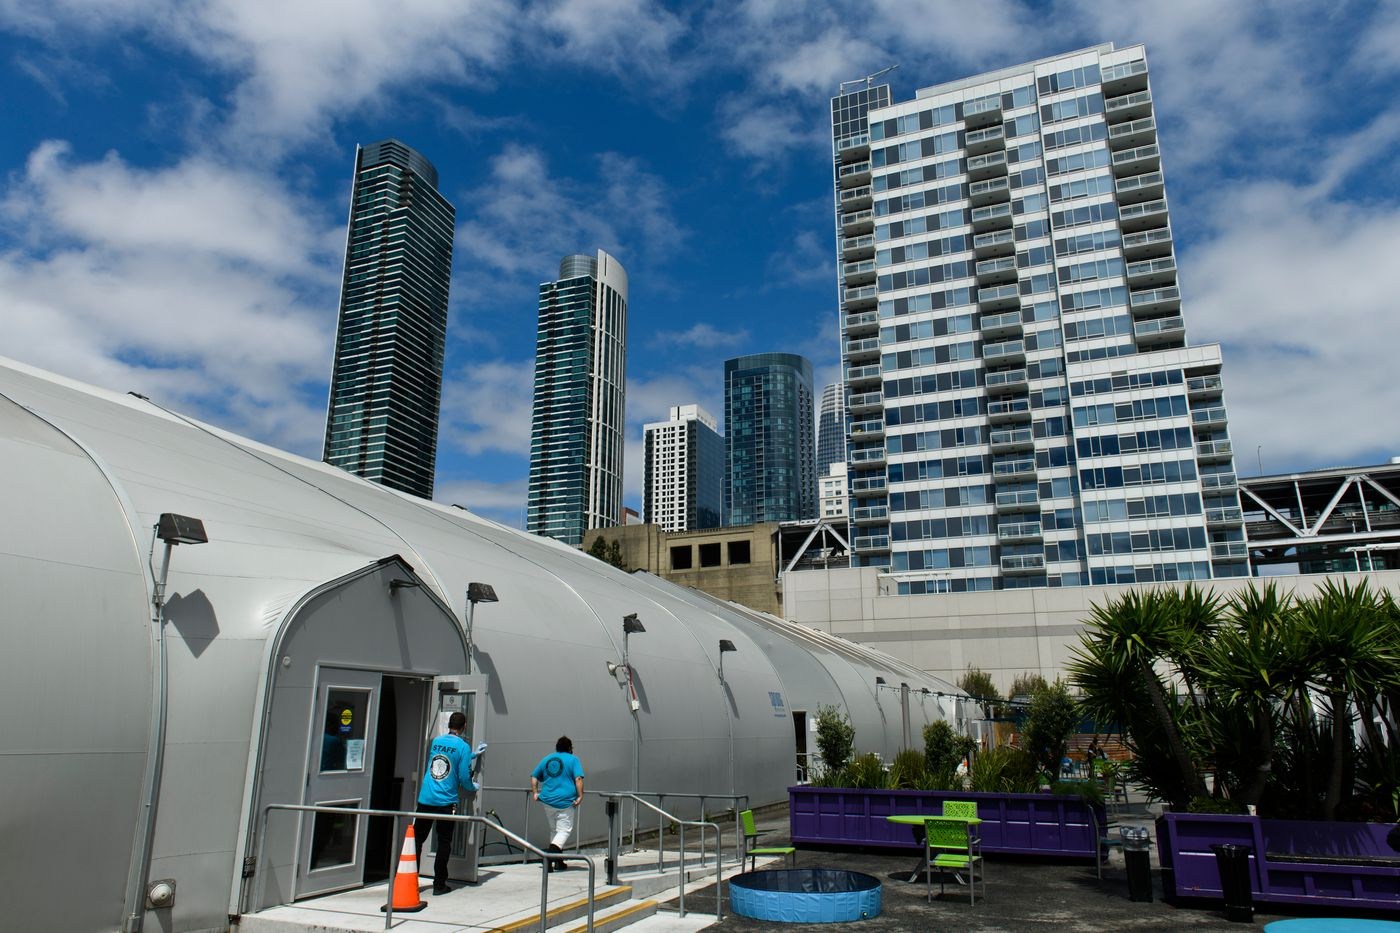 The Embarcadero SAFE Navigation Center, housed in fabric and aluminum enclosures made by Sprung Structures, opened in December 2019 despite objections from neighbors in the affluent section of the city. (Marc Lester / ADN)